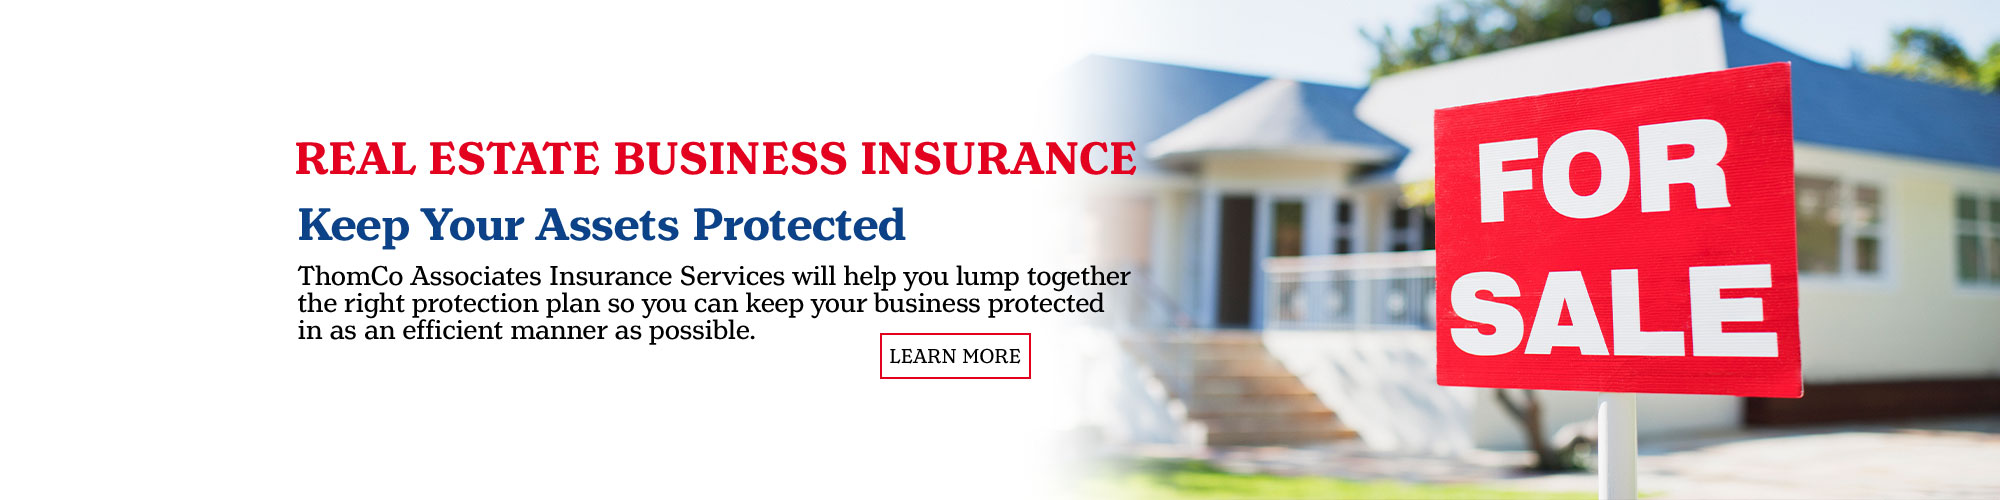 Real Estate Businesses Insurance. Keep your Assets Protected. You will want to ensure that your real estate business is covered properly, primarily based on what type of real estate in which you are involved. Learn More.